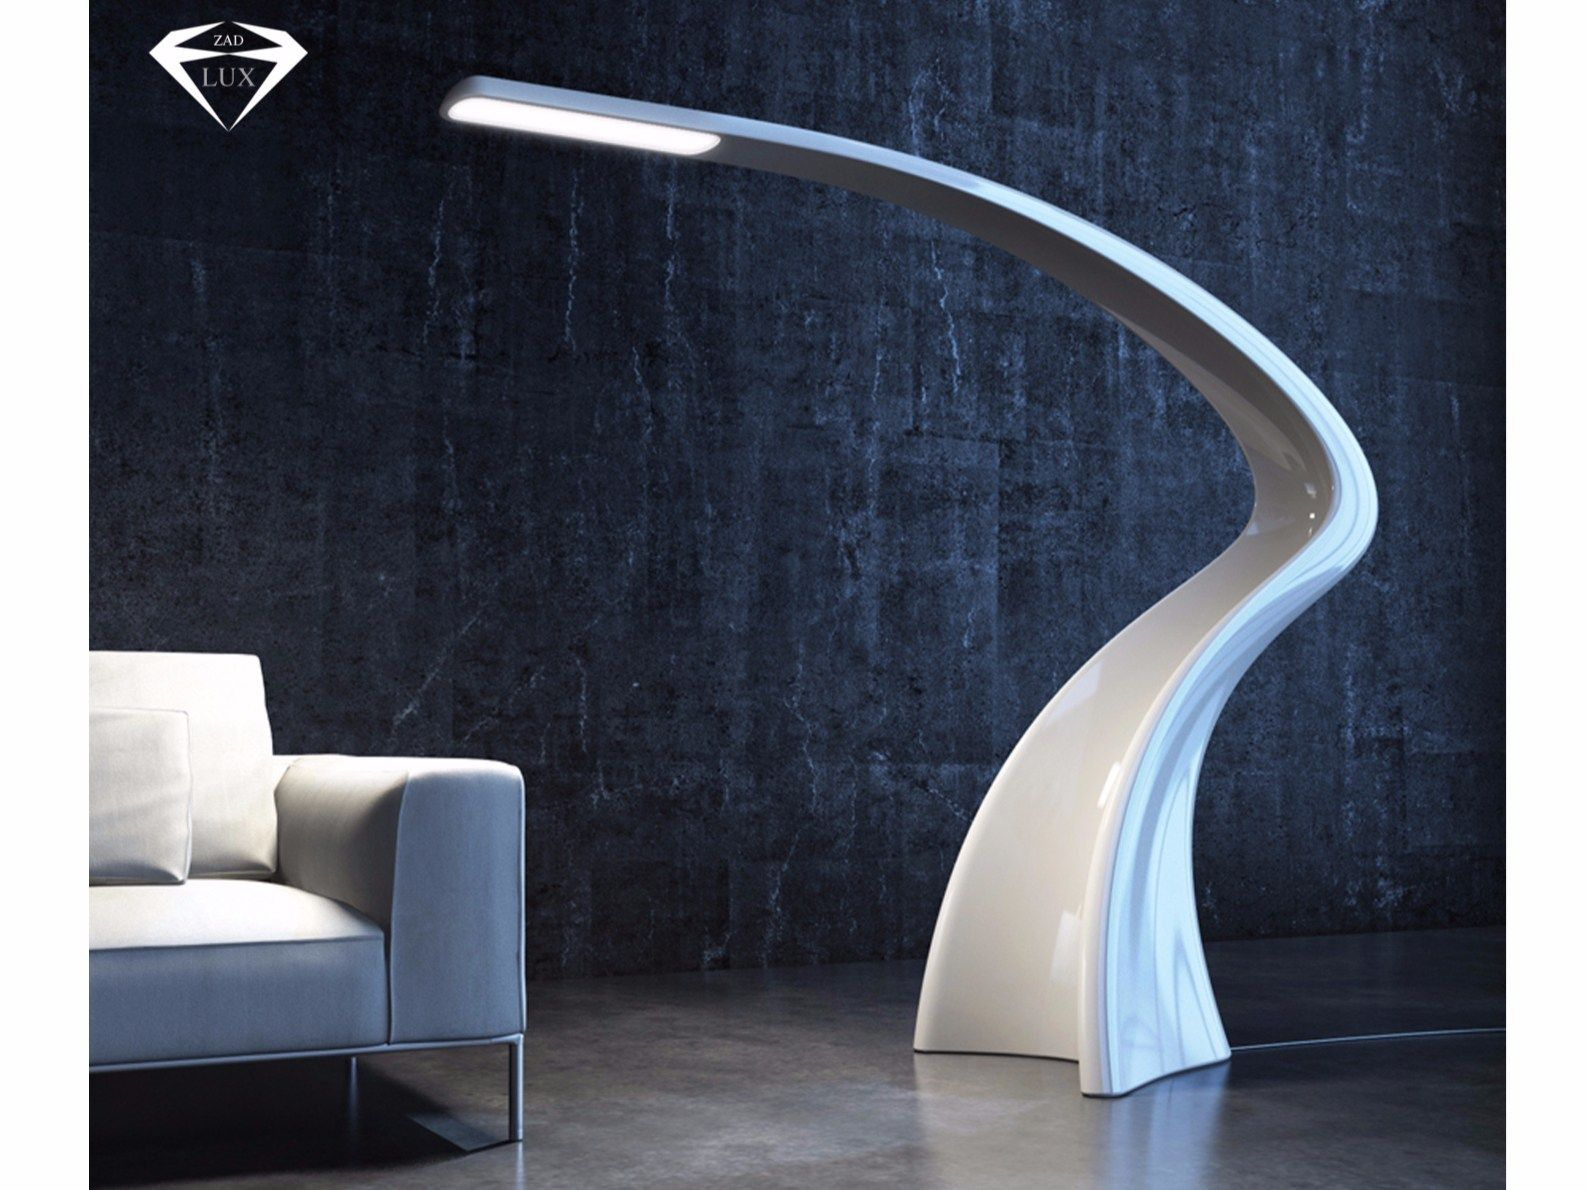 Led adamantx floor lamp with dimmer lumia by zad italy design